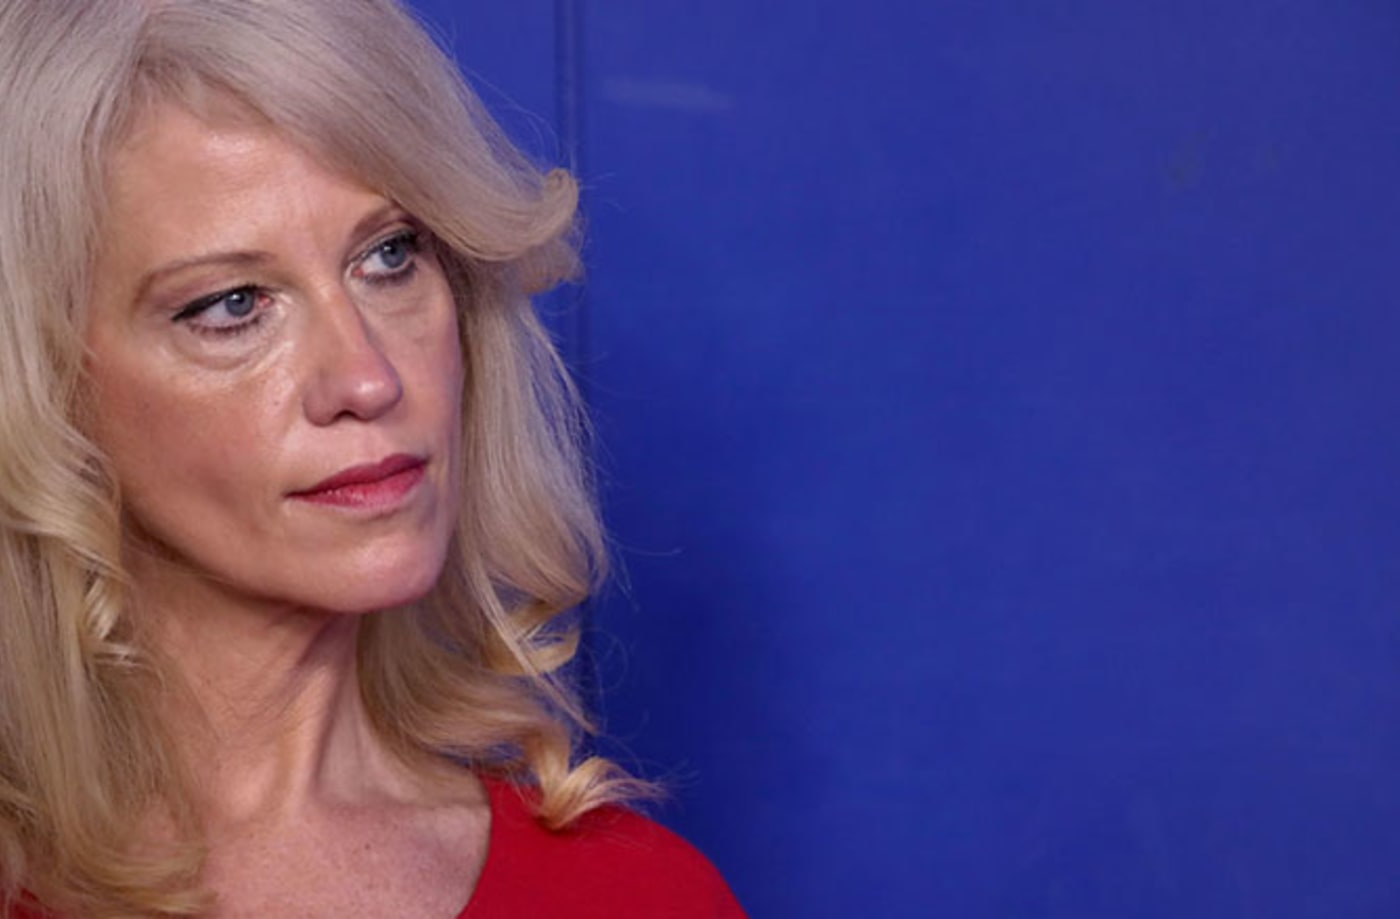 This is a photo of Kellyanne.